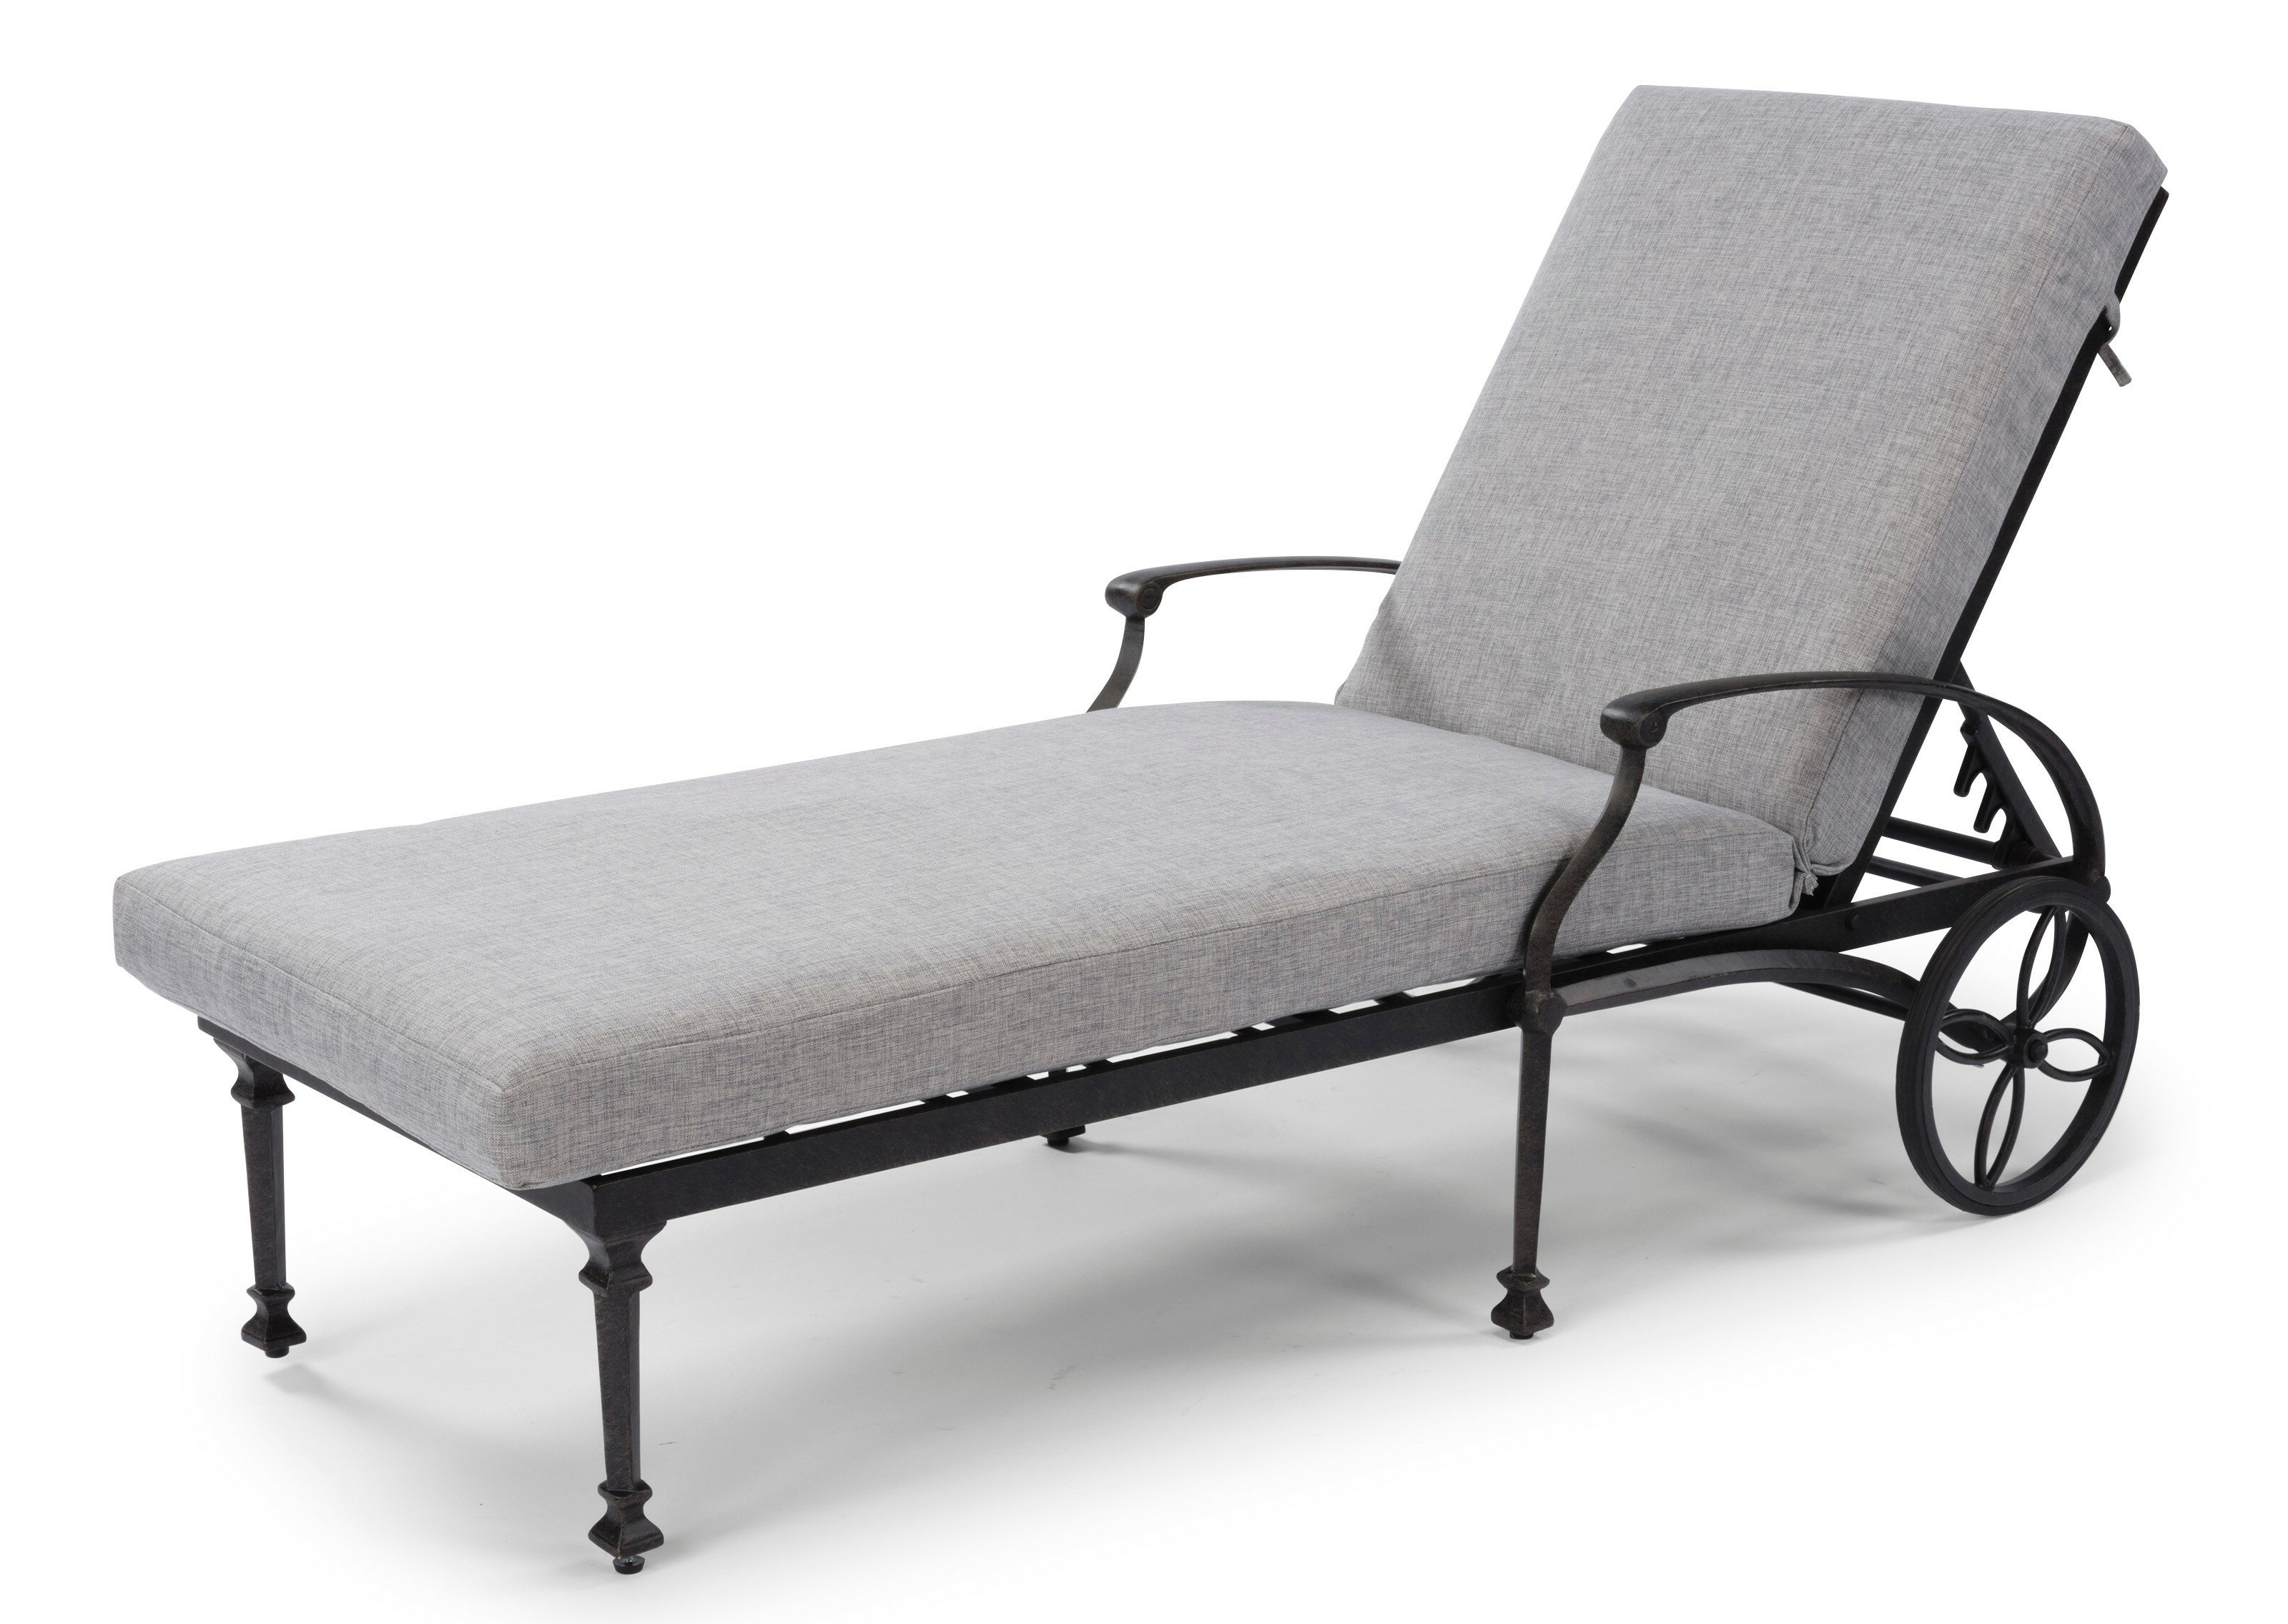 Preferred Flagg Cast Aluminum Outdoor Chaise Lounge With Cushion Pertaining To Aluminum Wheeled Chaise Lounges (View 18 of 25)